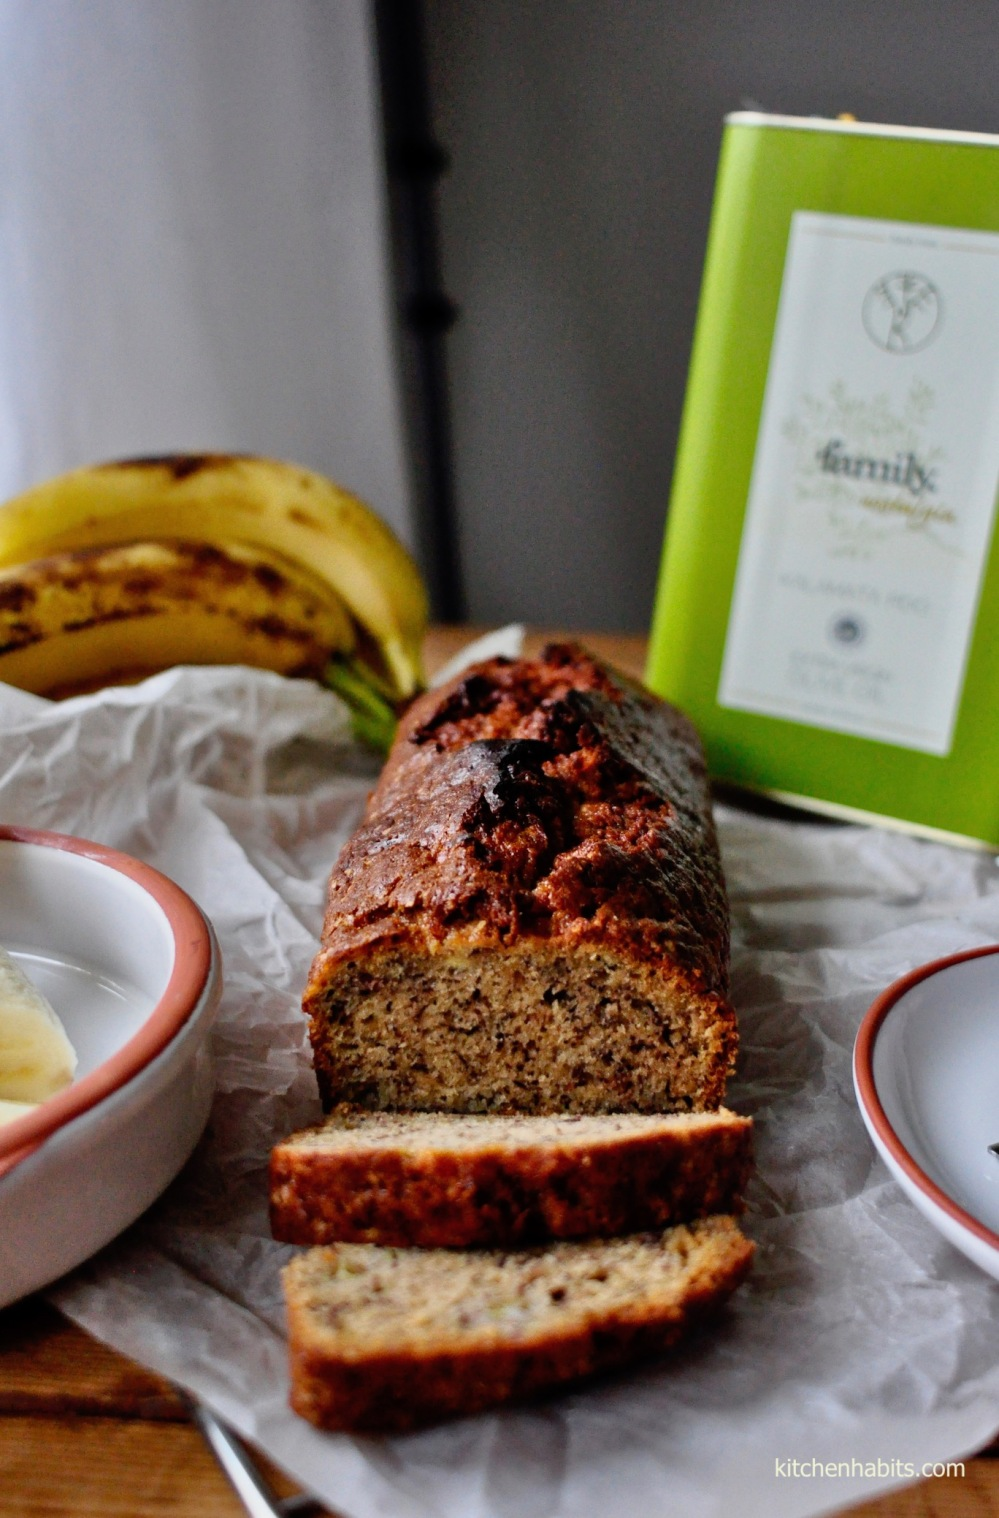 banana-bread_kitchenhabitscom4